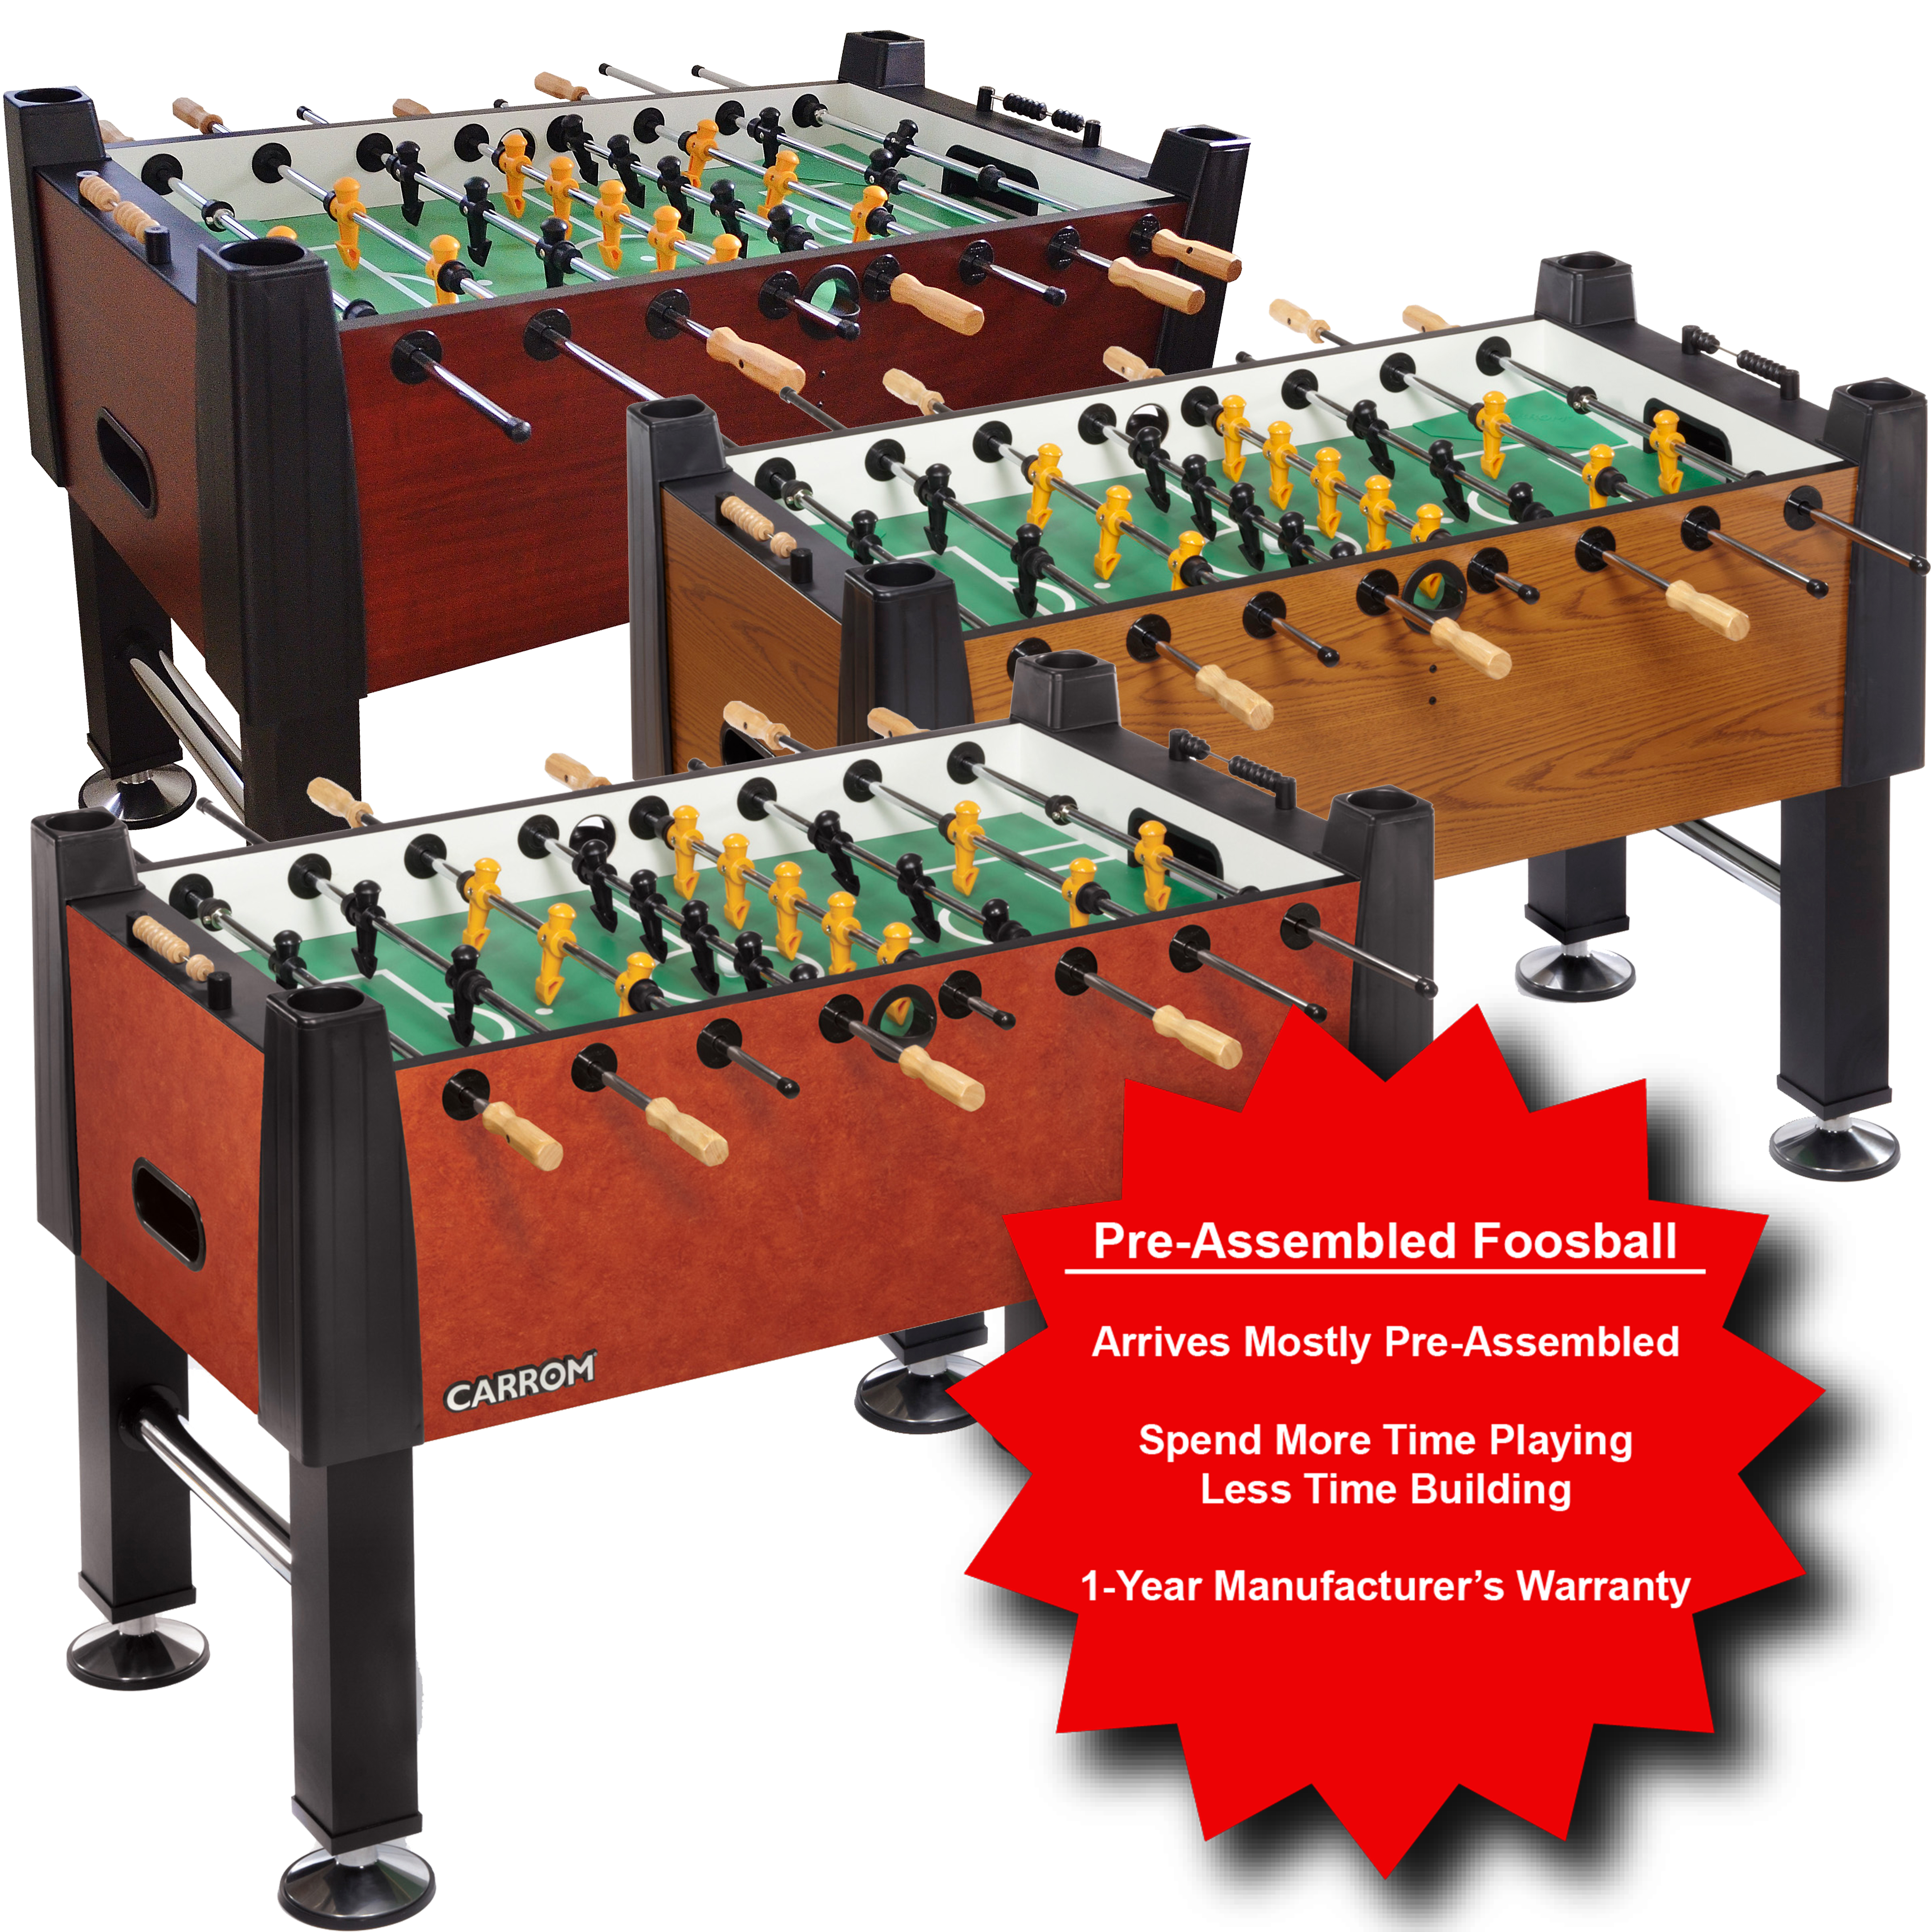 Foosball fun facts and findings carrom company - Who invented table football ...